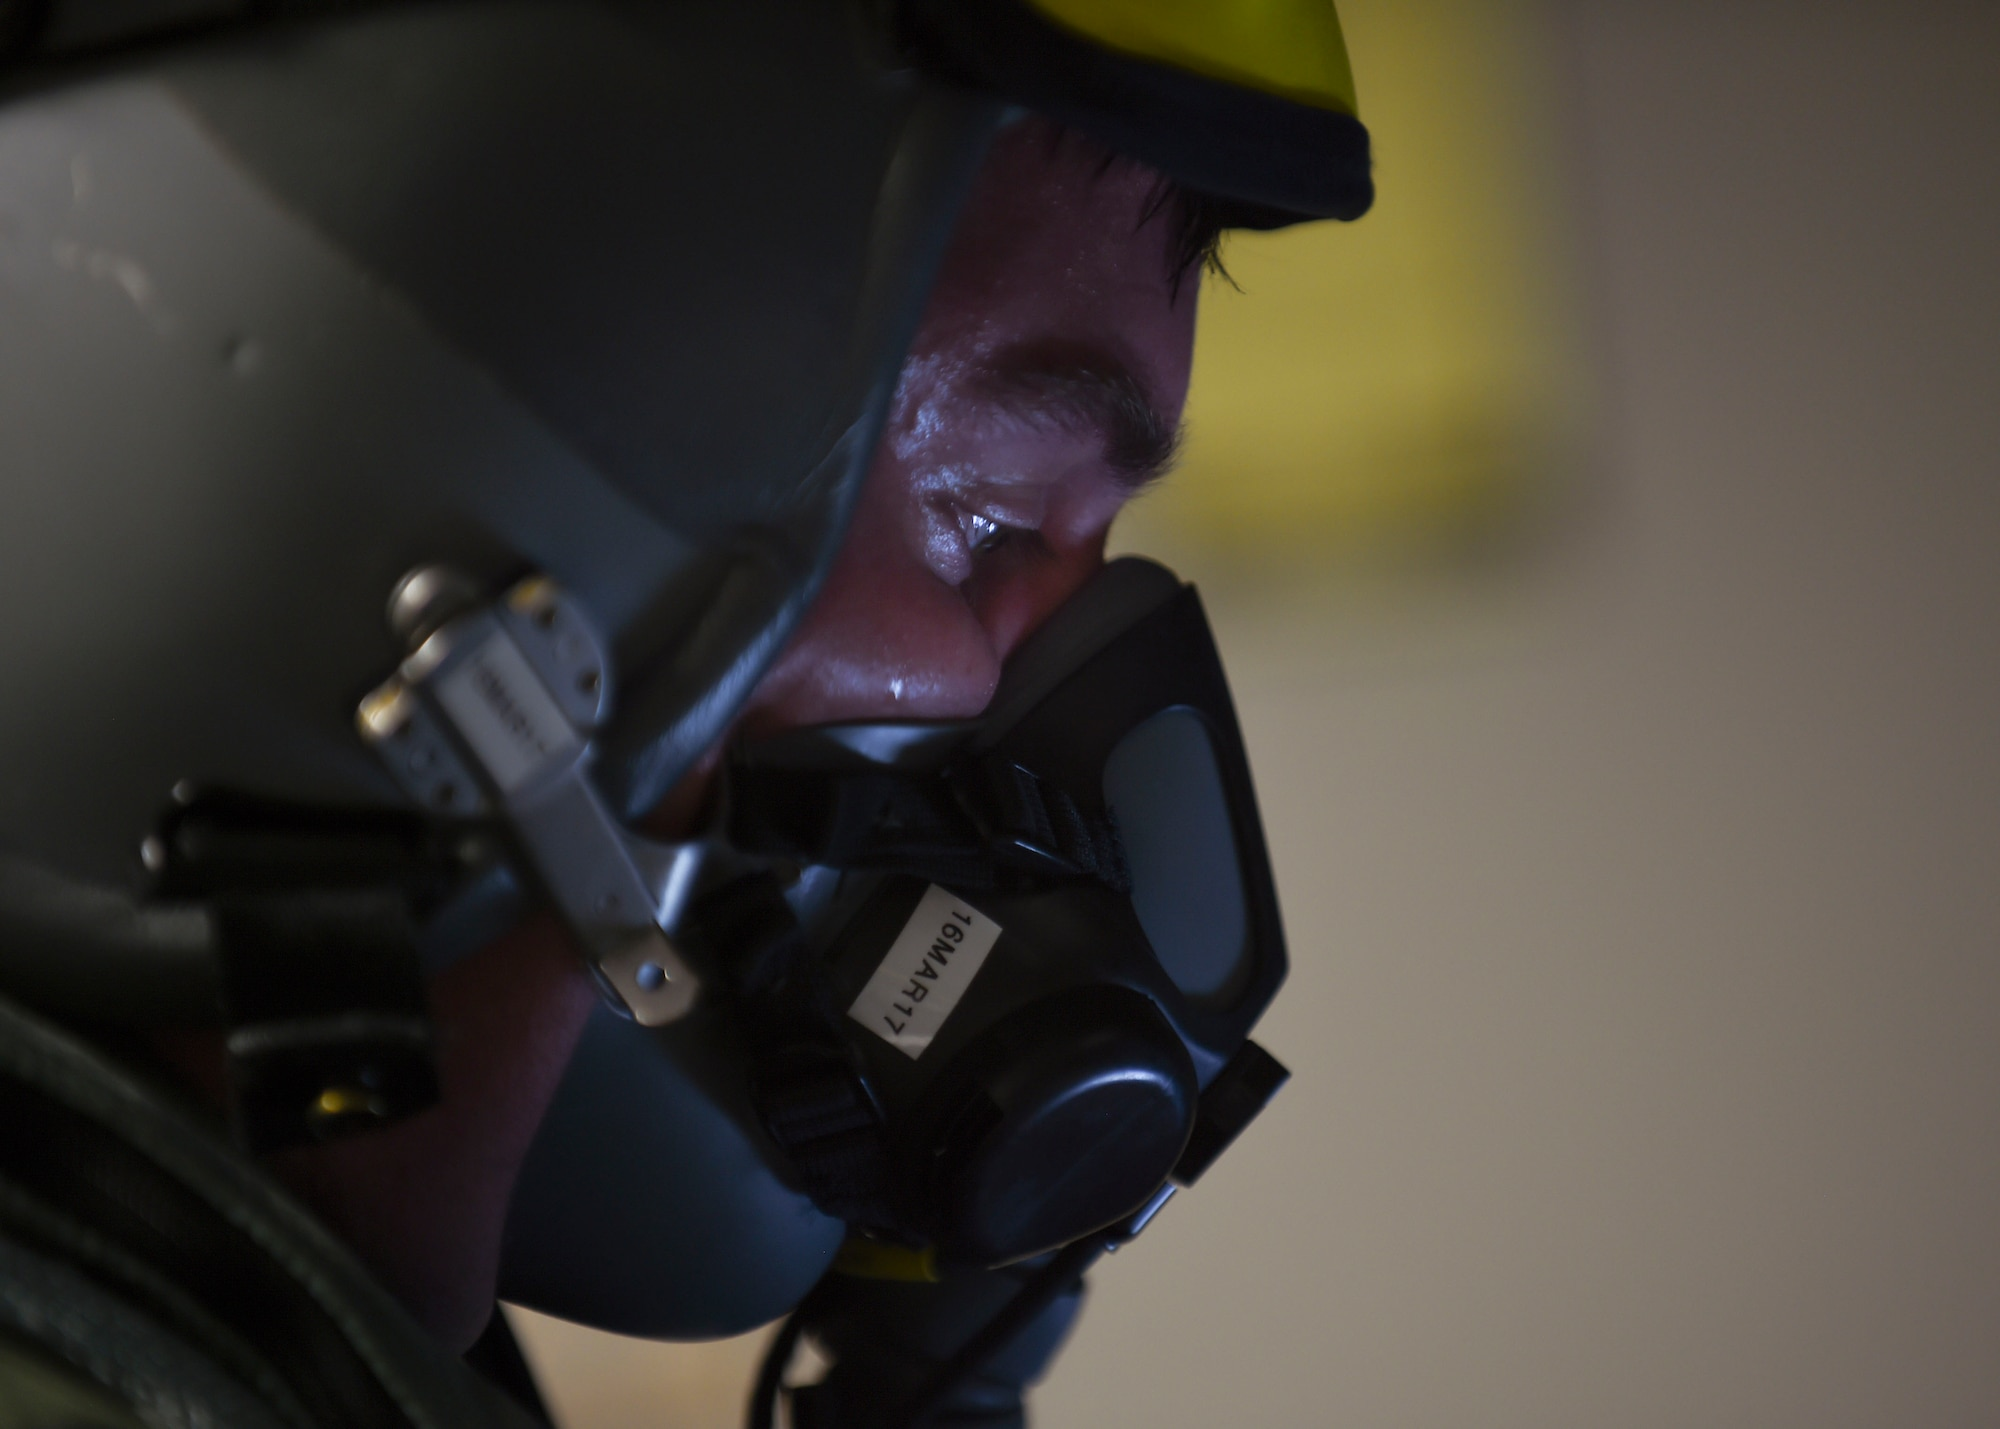 A pilot tests his oxygen mask before flying at Joint Base Langley-Eustis, Va., Feb. 27, 2017. Pilots tests their oxygen masks before each flight to ensure they are in working order providing safety for the entirety of their world-wide missions. (U.S. Air Force photo by Staff Sgt. Natasha Stannard)